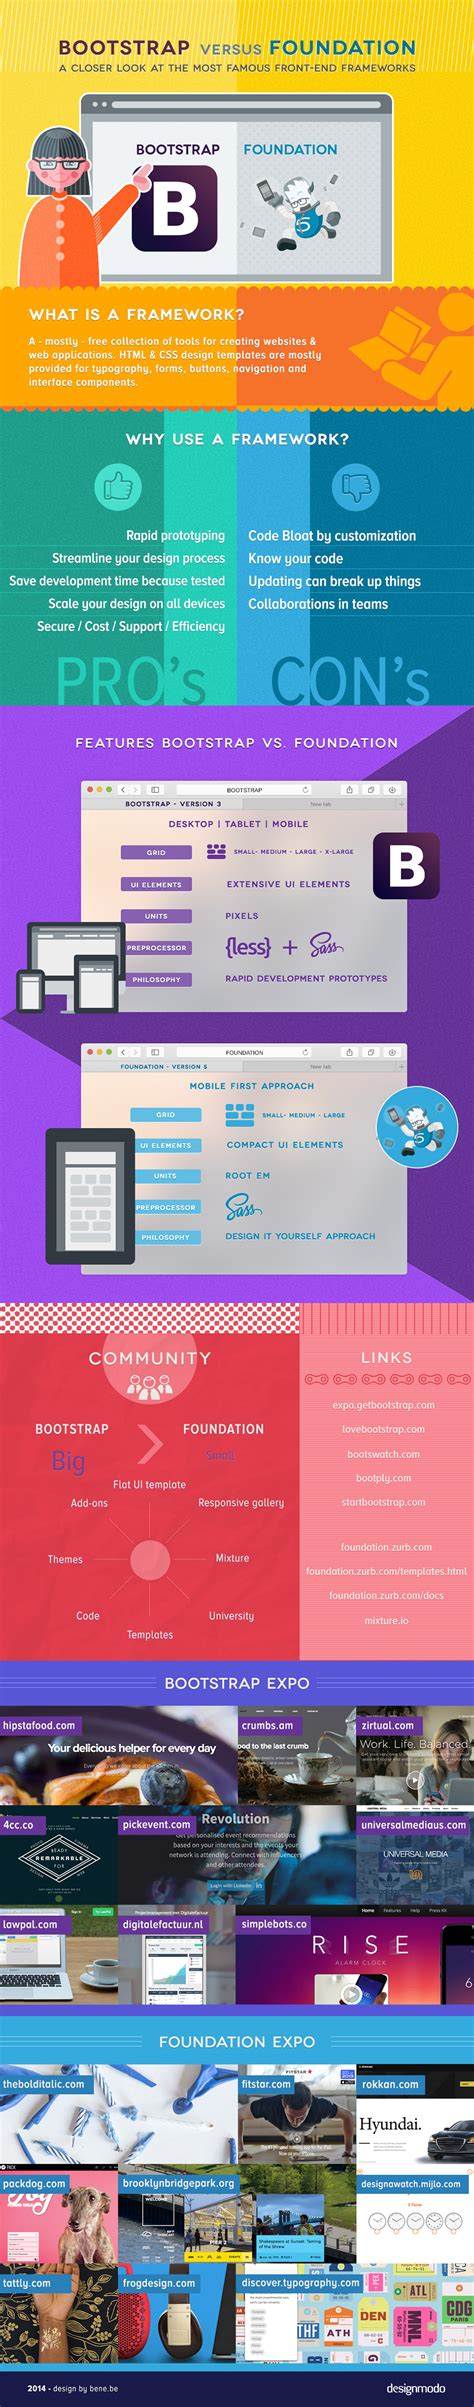 bootstrap tutorial rr foundation infographic bootstrap framework